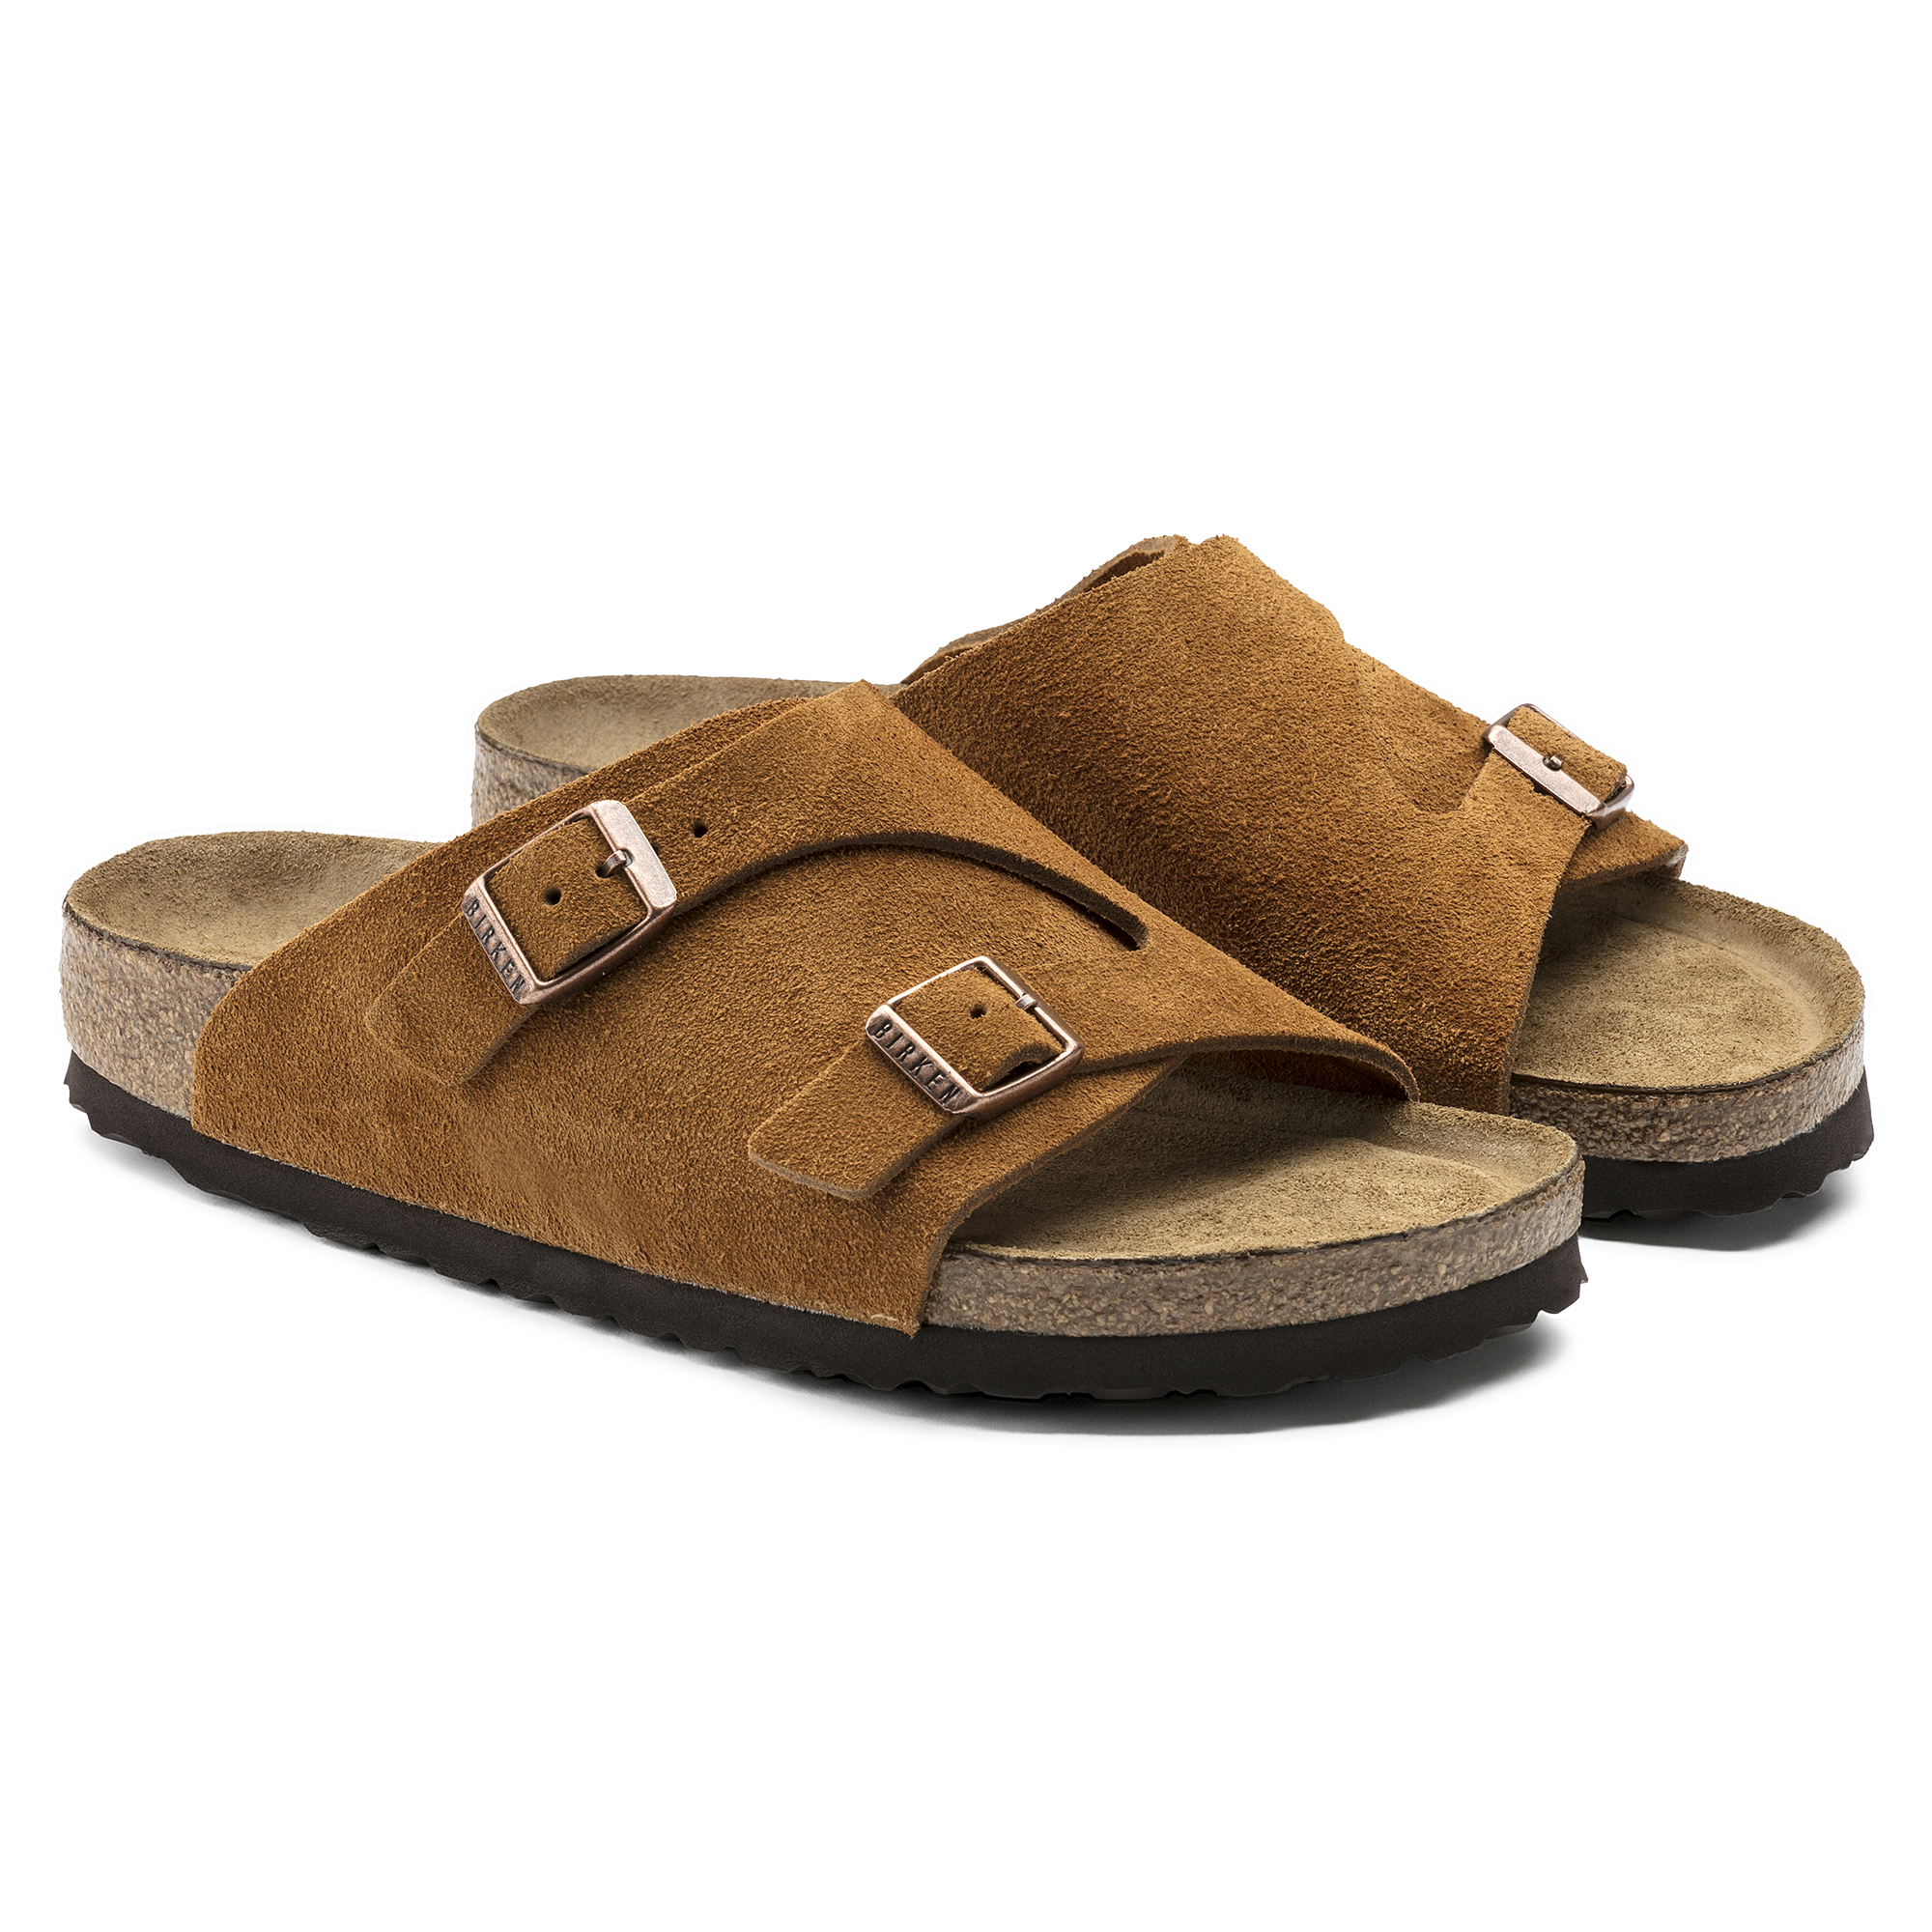 4a533df99532 ... Zürich Suede Leather Soft Footbed Mink ...